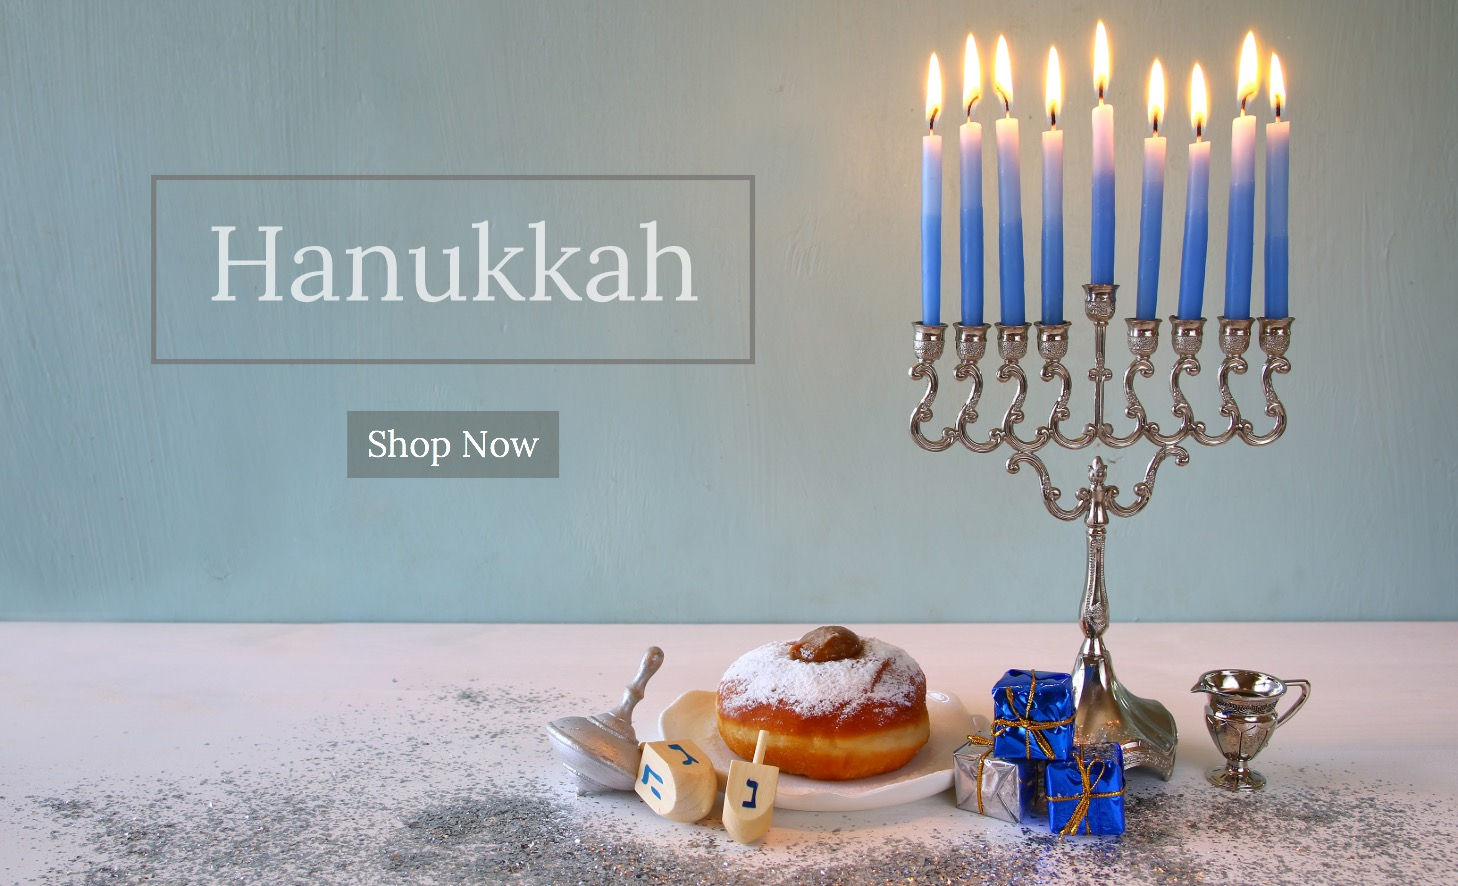 Hanukkah Shop Now